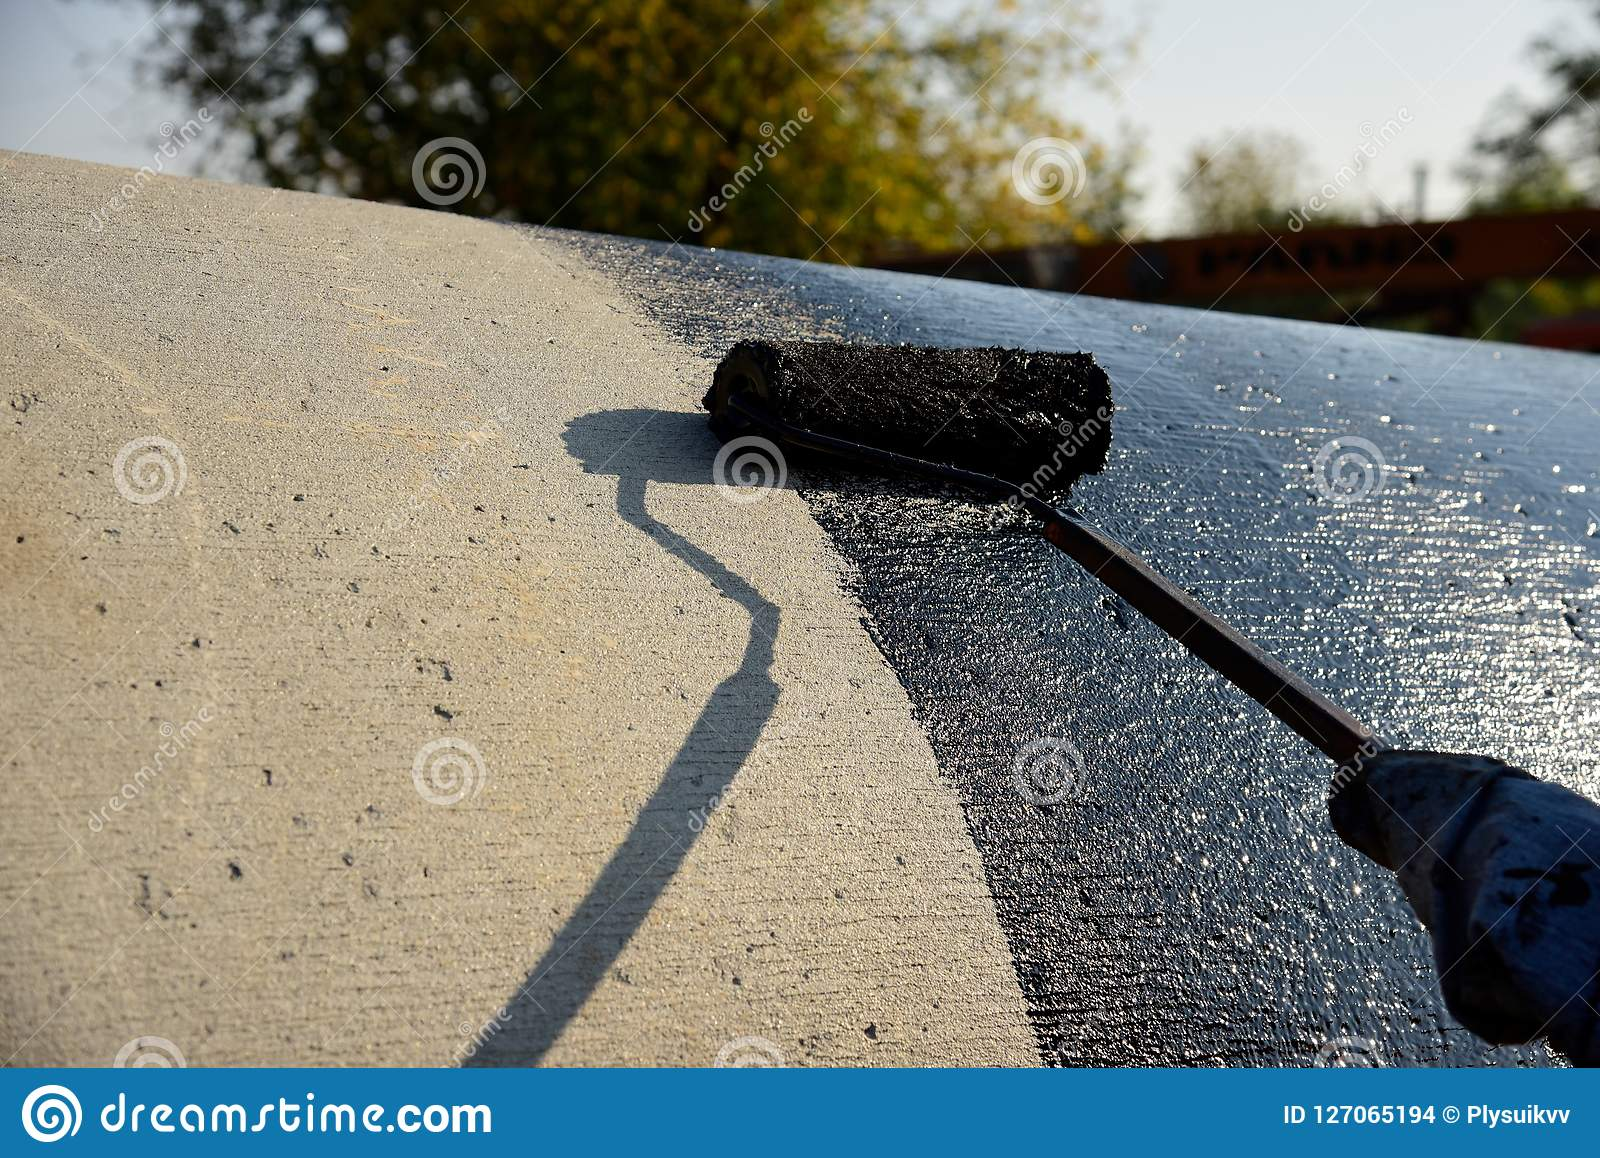 Industrial worker on construction site laying sealant